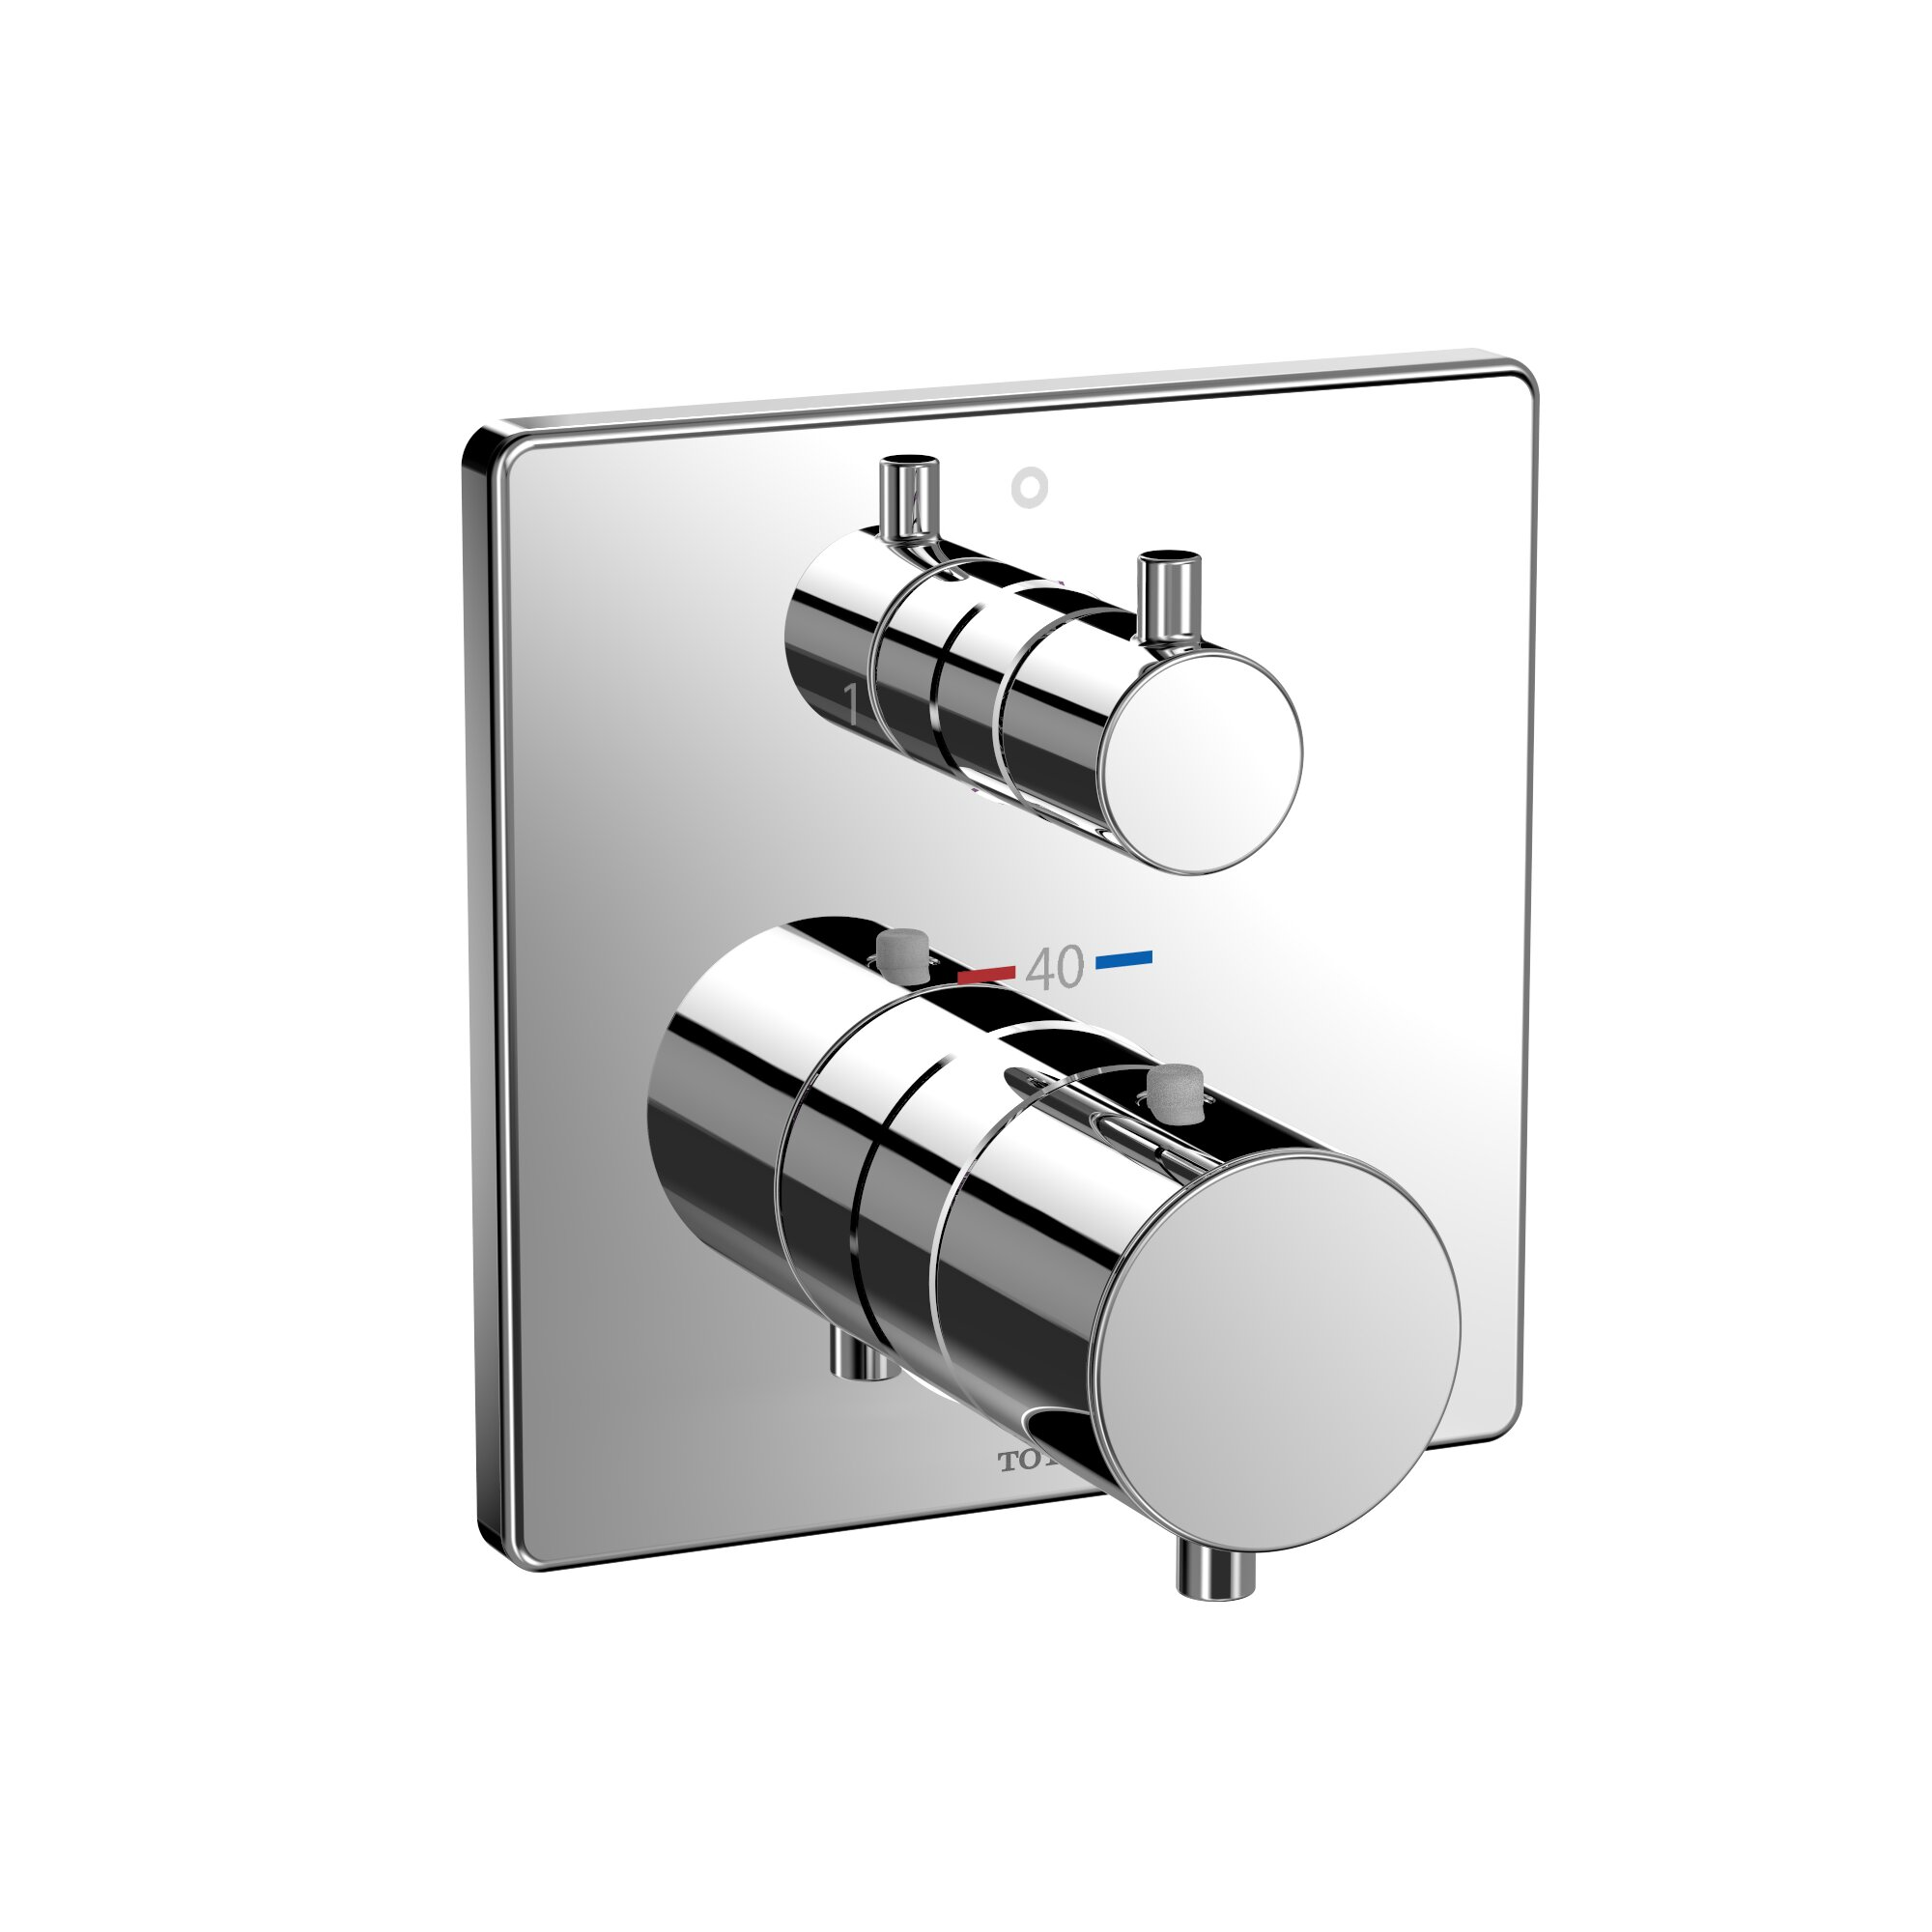 Toto Square Thermostatic Mixing Valve with Two-Way Diverter Shower ...